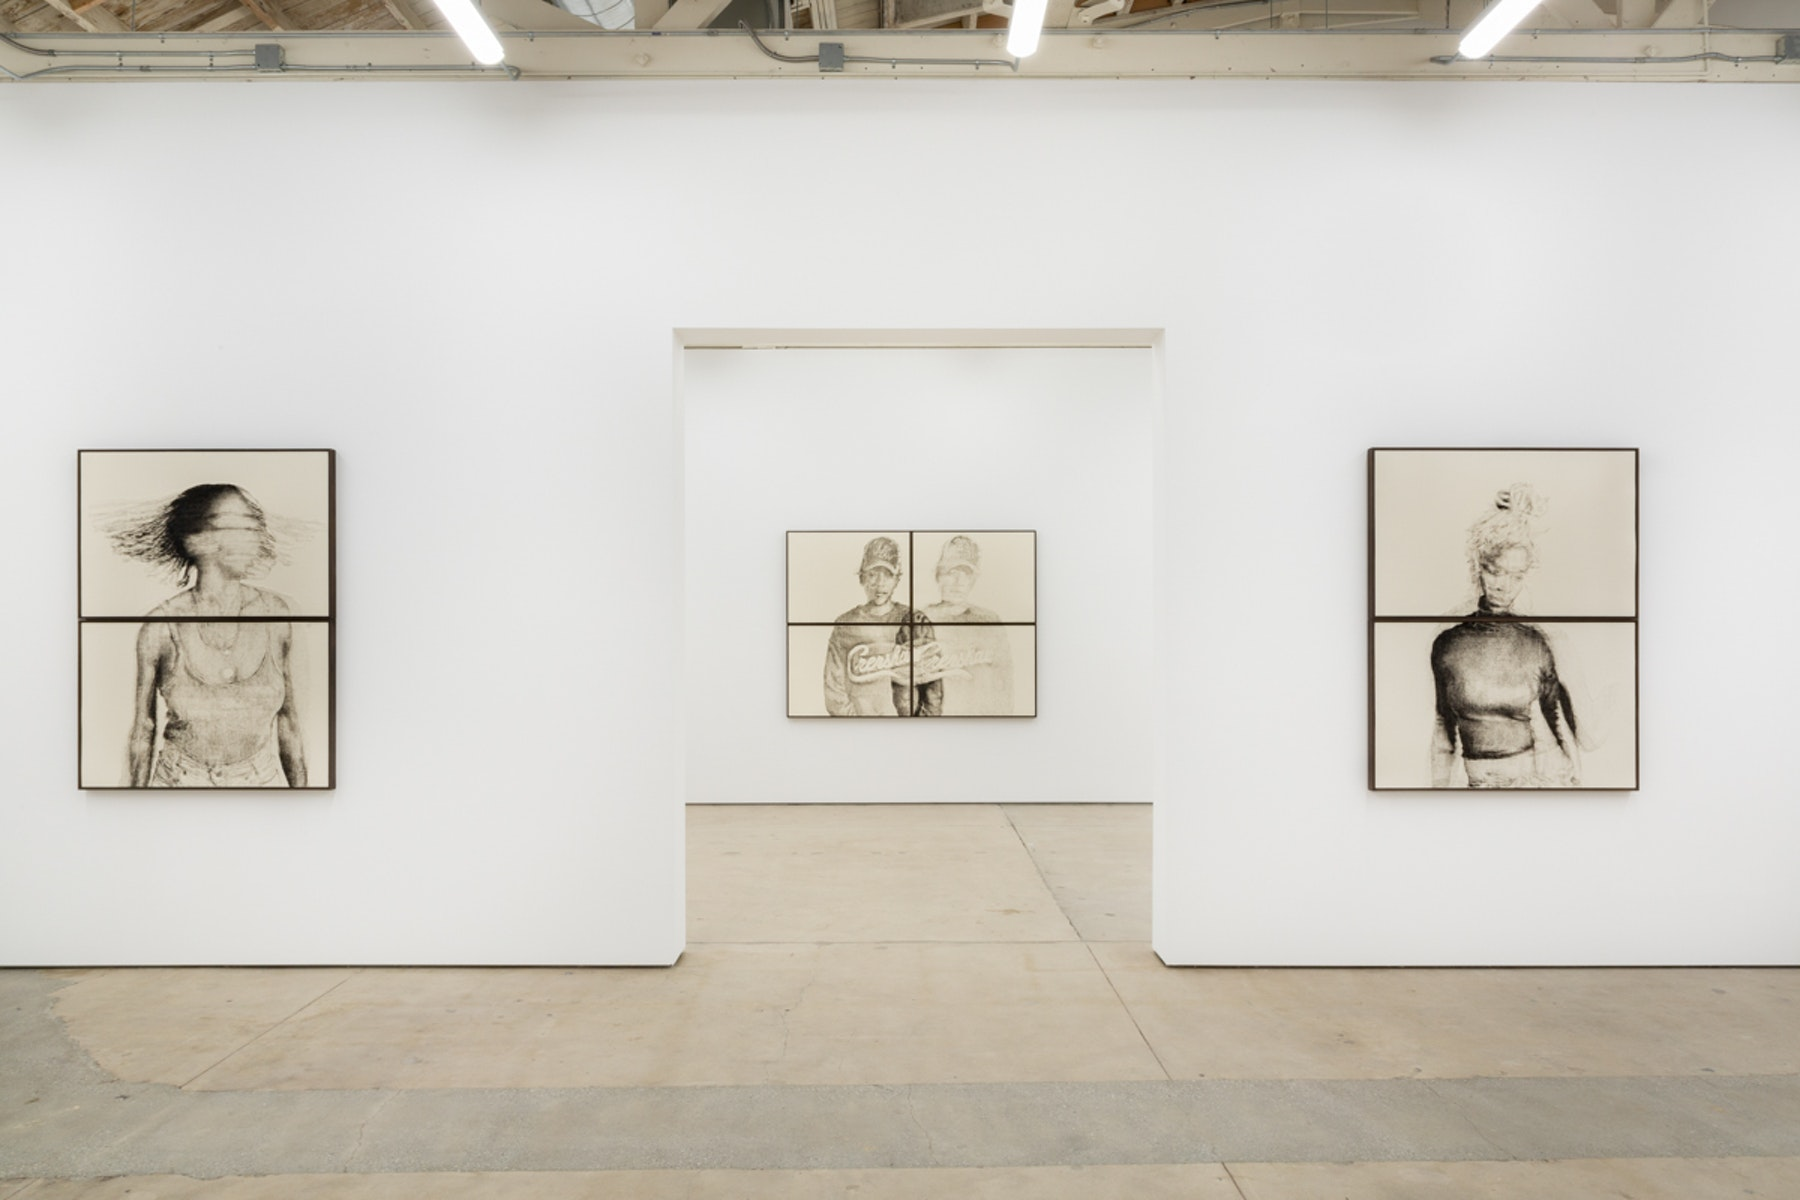 Installation view of Blur in the Interest of Precision by Kenturah Davis at Matthew Brown, Los Angeles. 26 January - 2 March 2019. Courtesy of the Artist and Matthew Brown, Los Angeles.